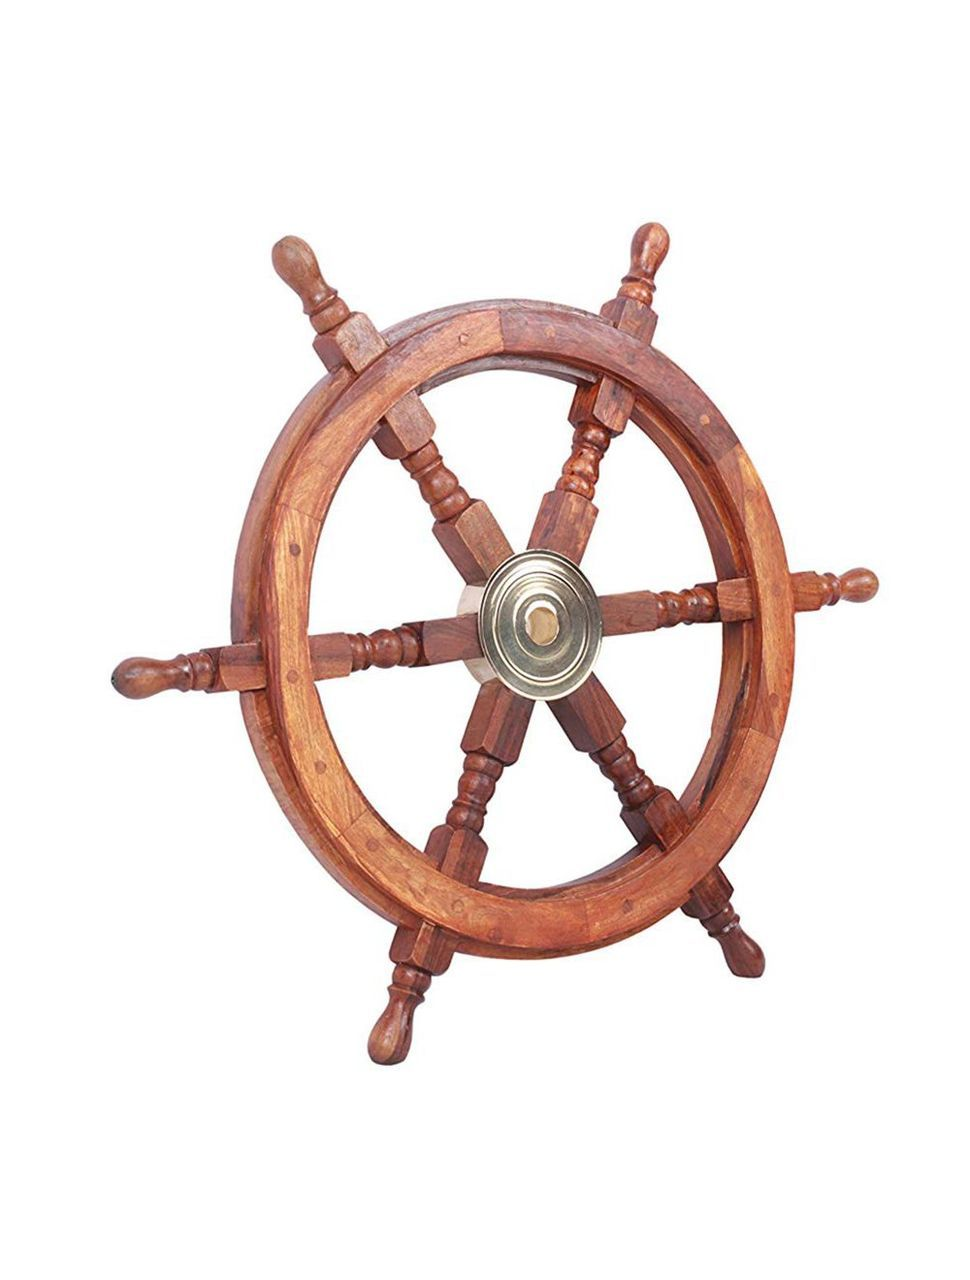 Boat Ships Steering Wheel 24 Teak Wood Brass Hub Nautical Decor In 2020 Ship Wheel Brass Ship Wooden Ship